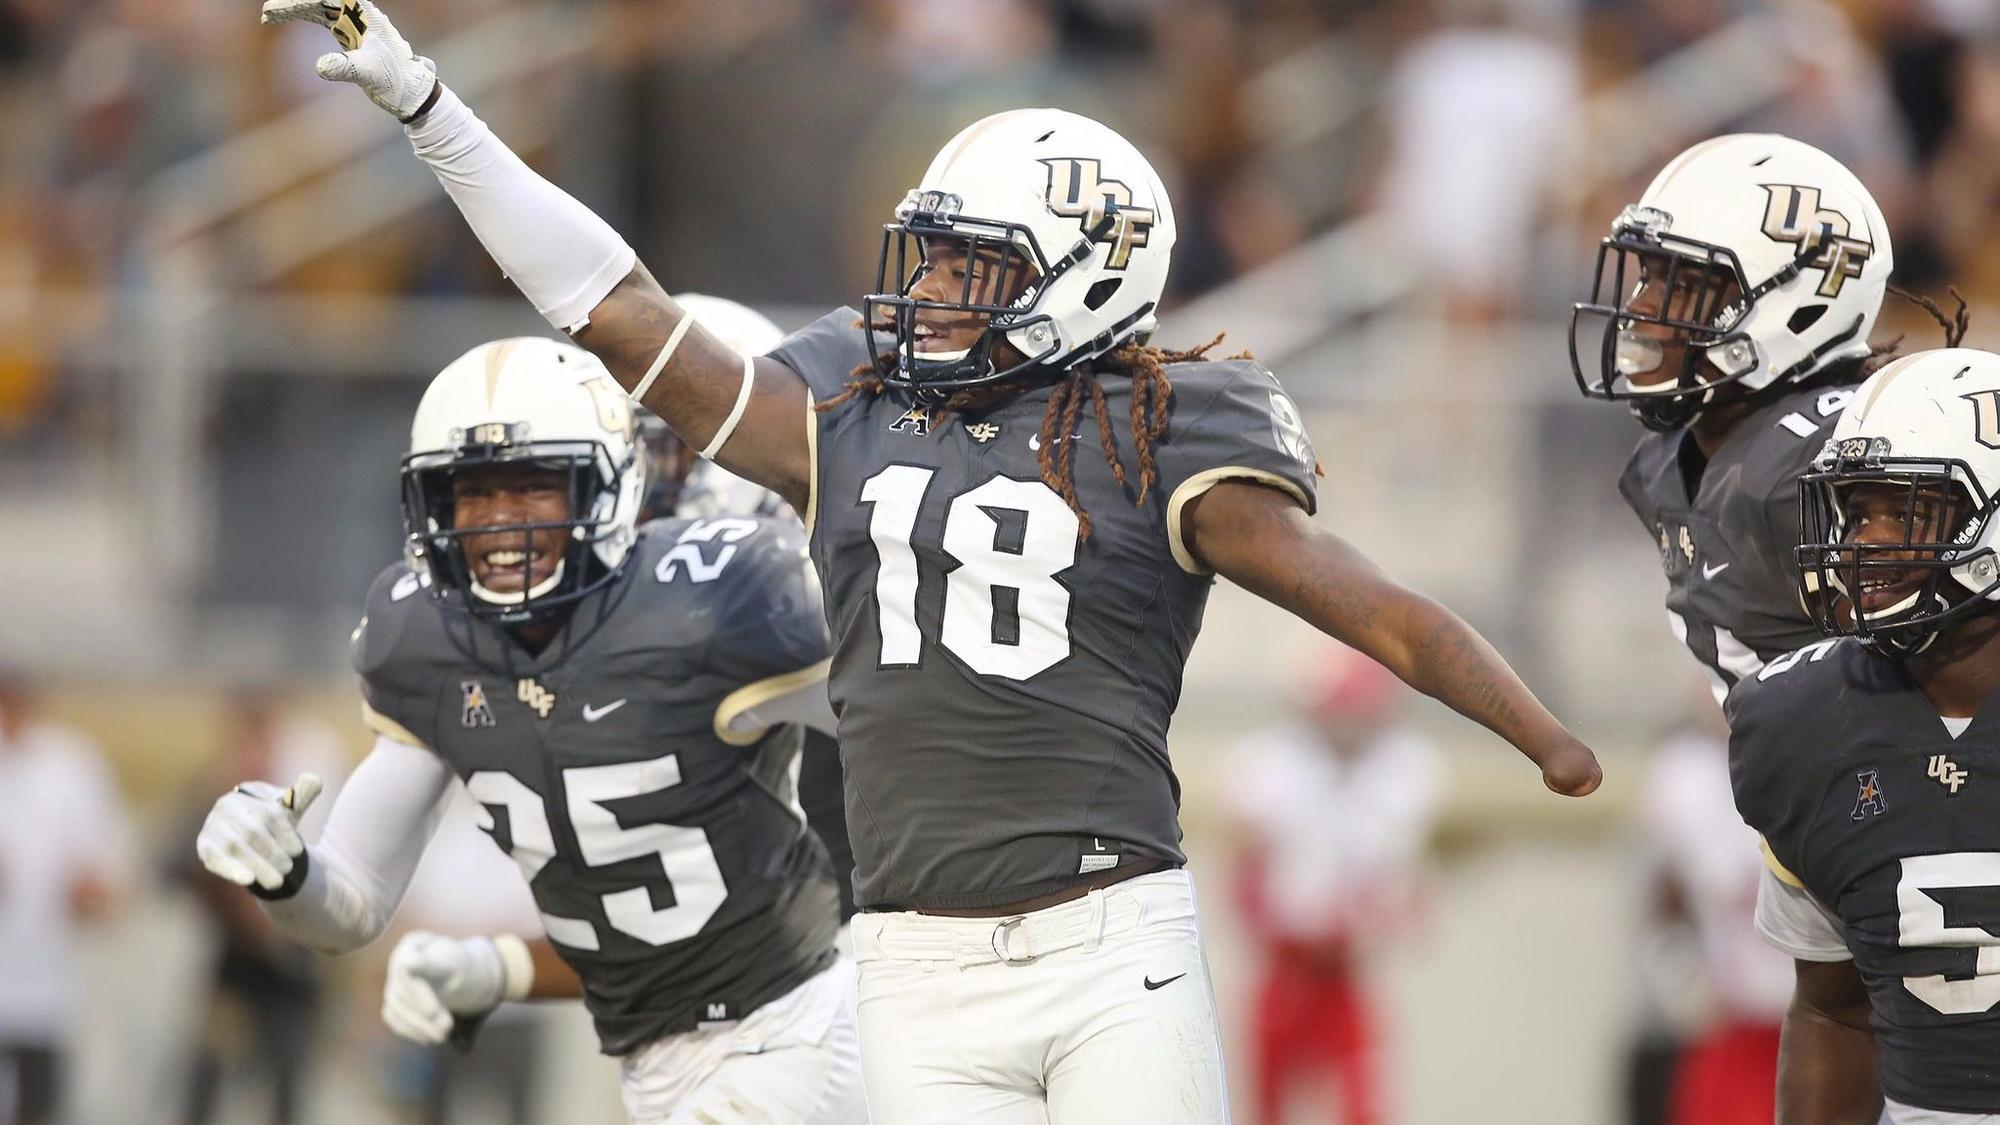 Ucf New Head Coach >> UCF sets scoring record during 73-33 rout of Austin Peay - Orlando Sentinel